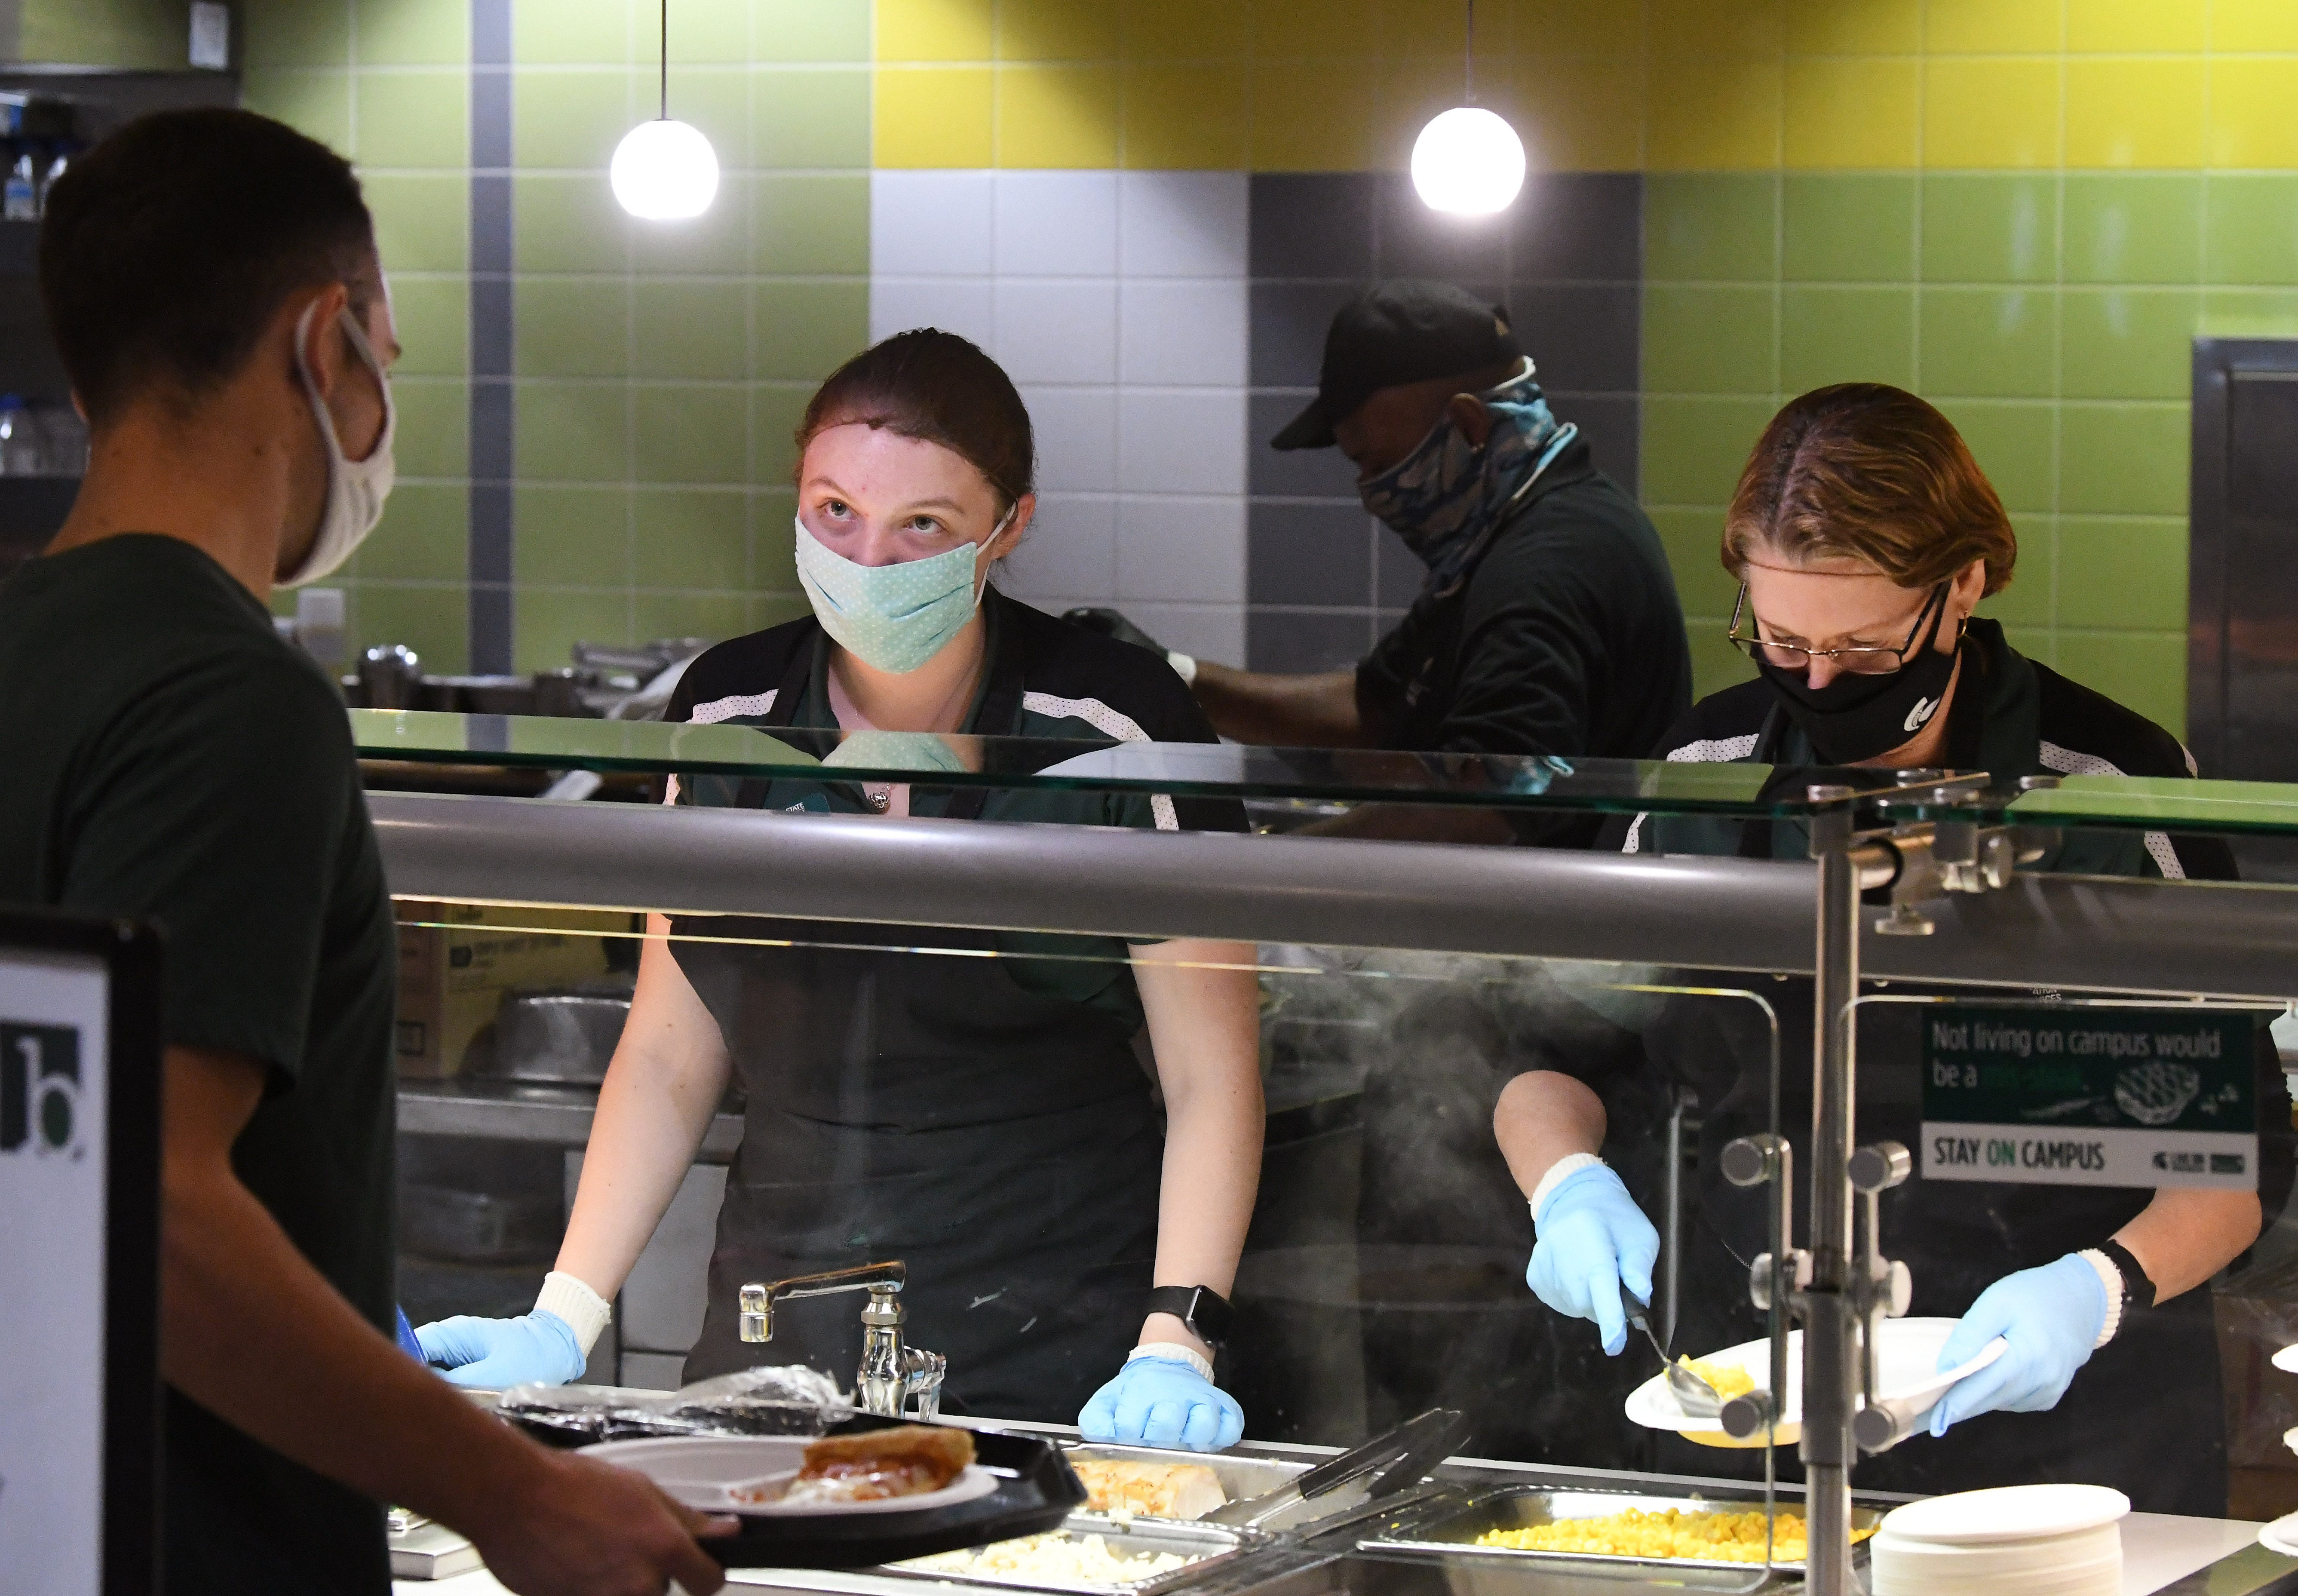 MSU asking faculty to volunteer in dining halls amid staffing shortage